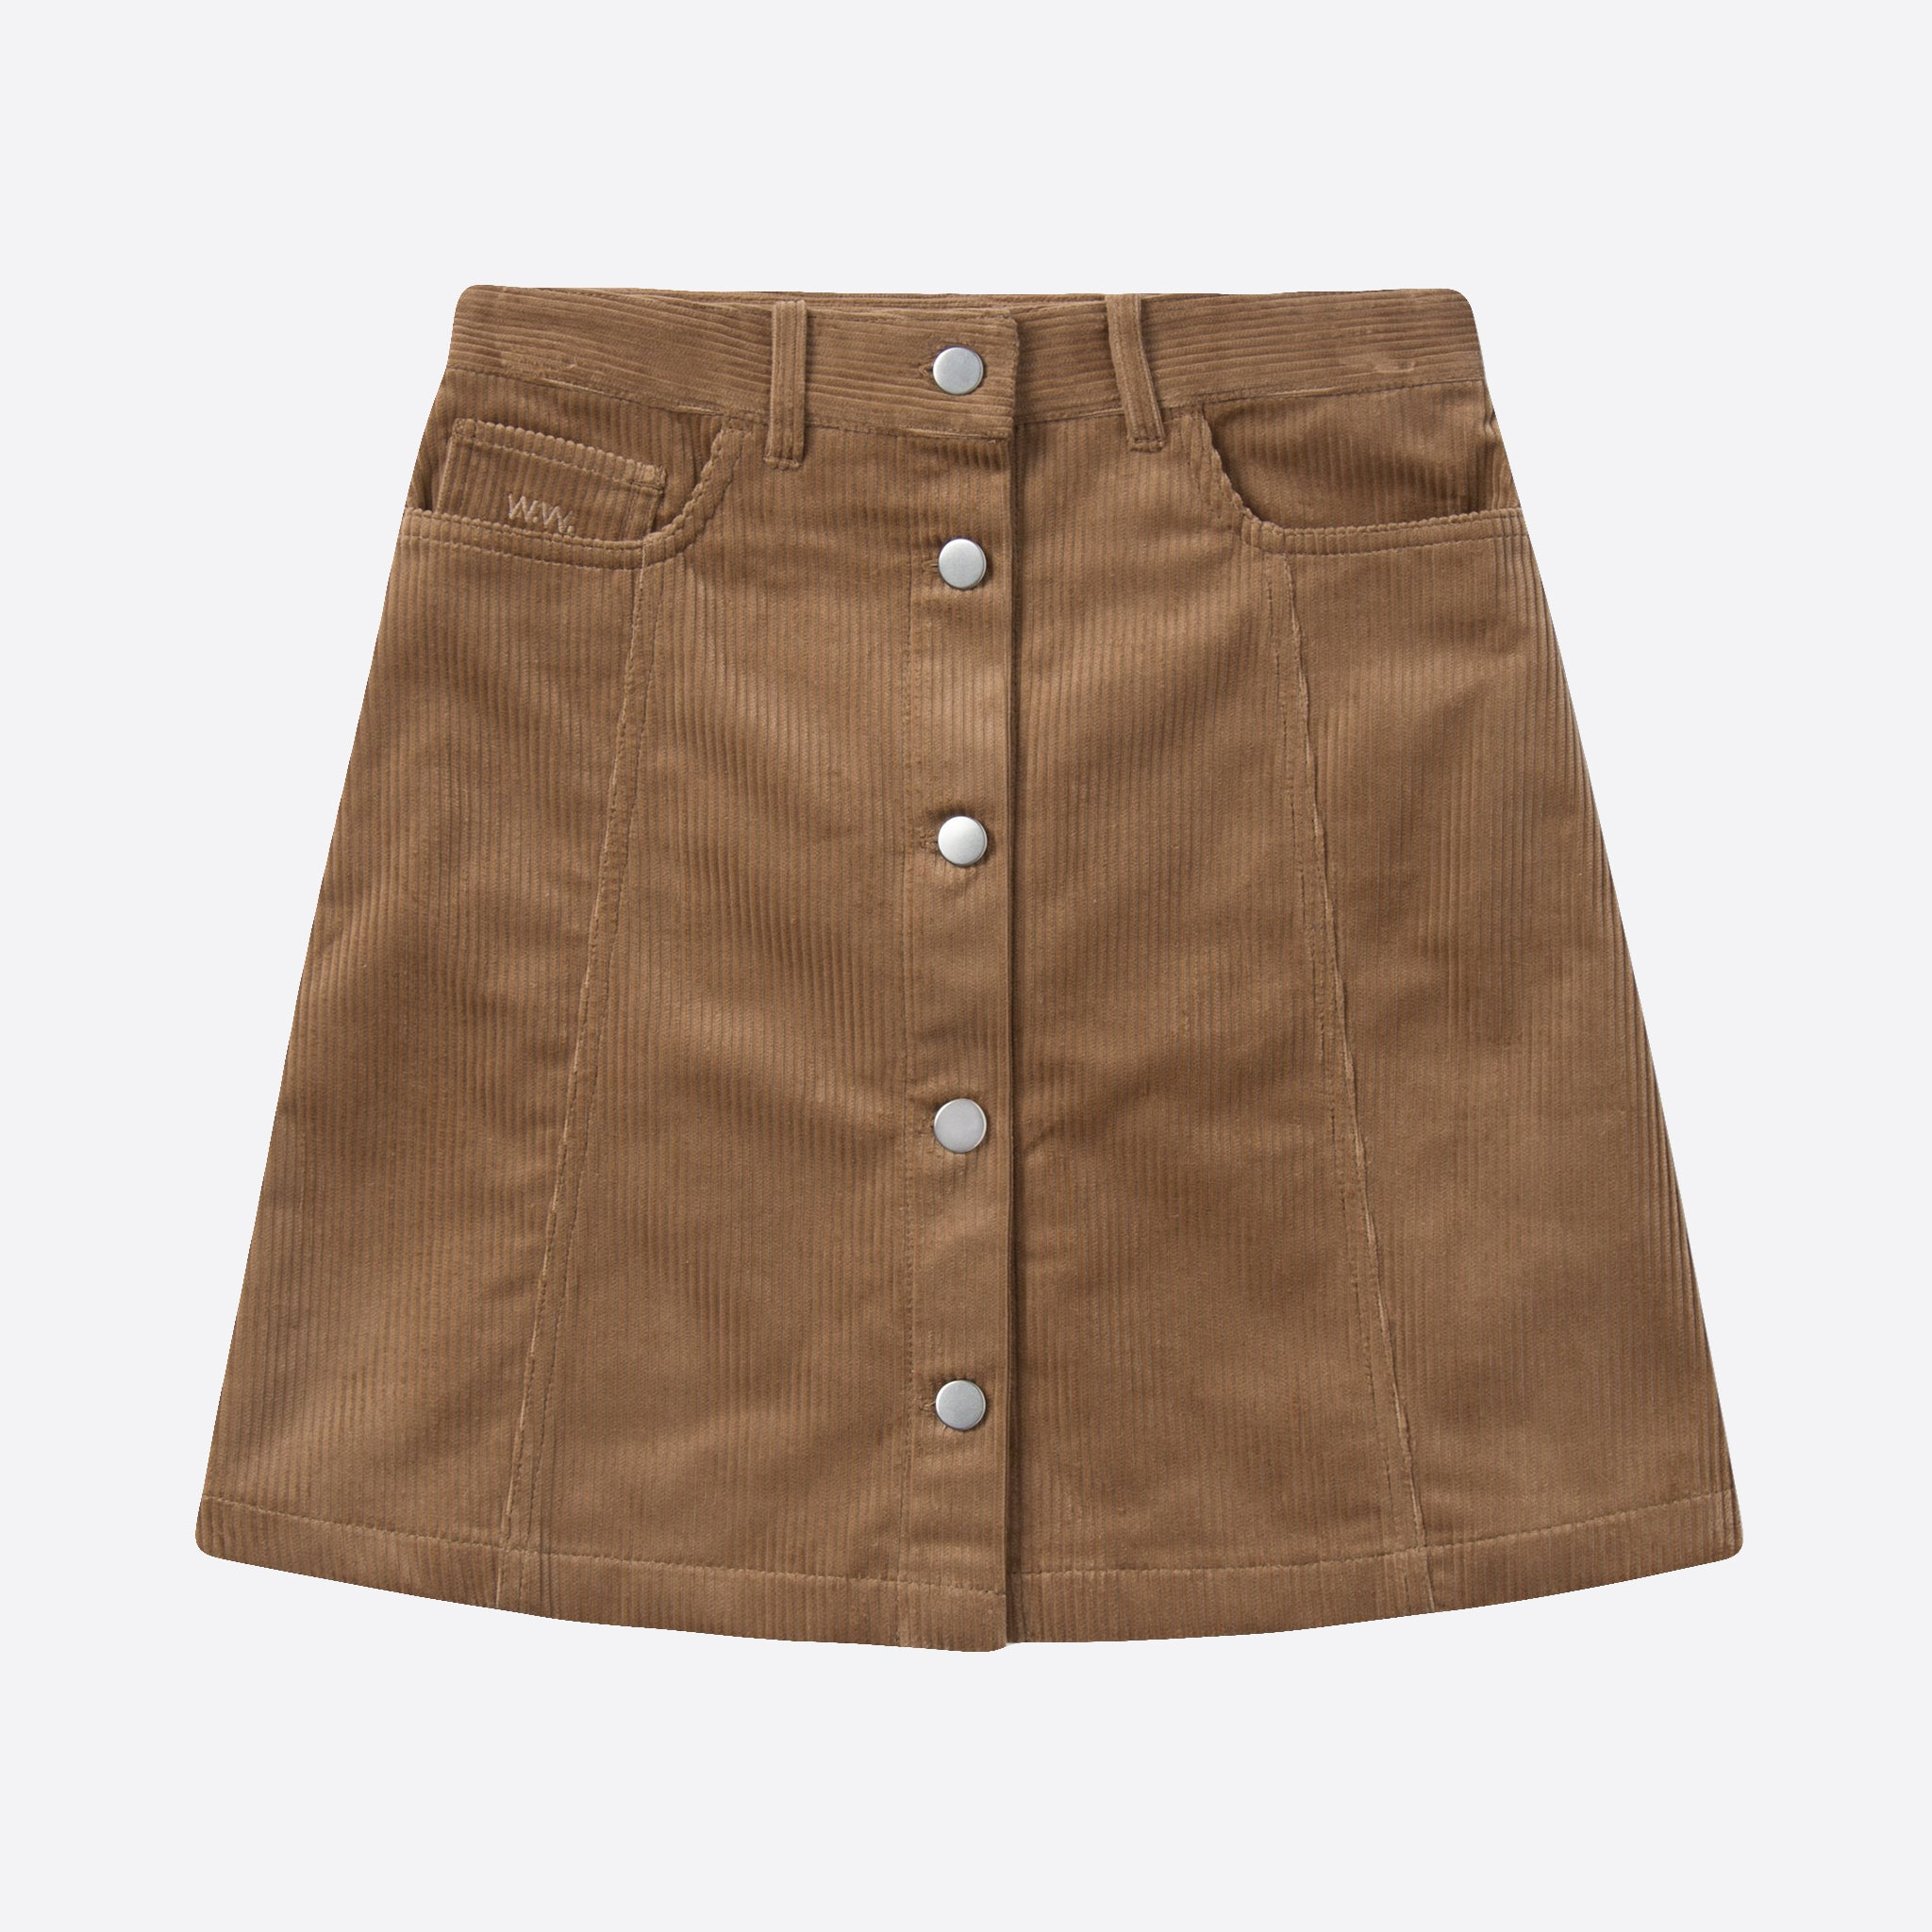 Wood Wood Addie Skirt in Khaki